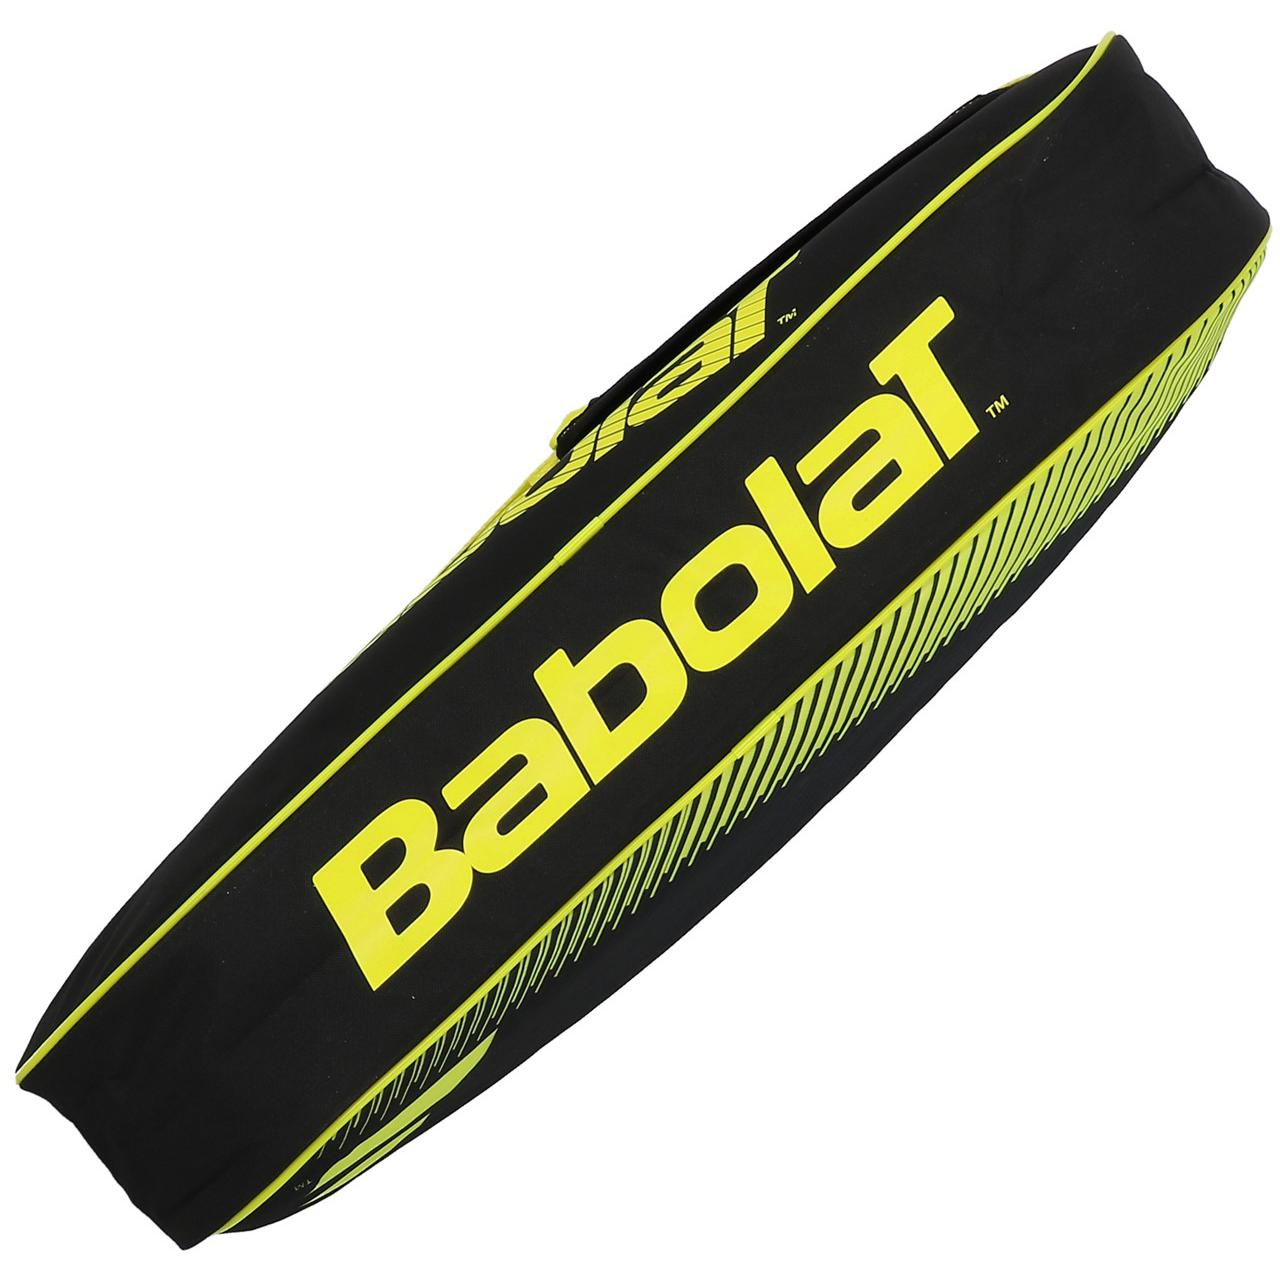 Bag-Tennis-Babolat-Rack-Holder-Club-3r-Black-Jne-Black-71710-New thumbnail 2